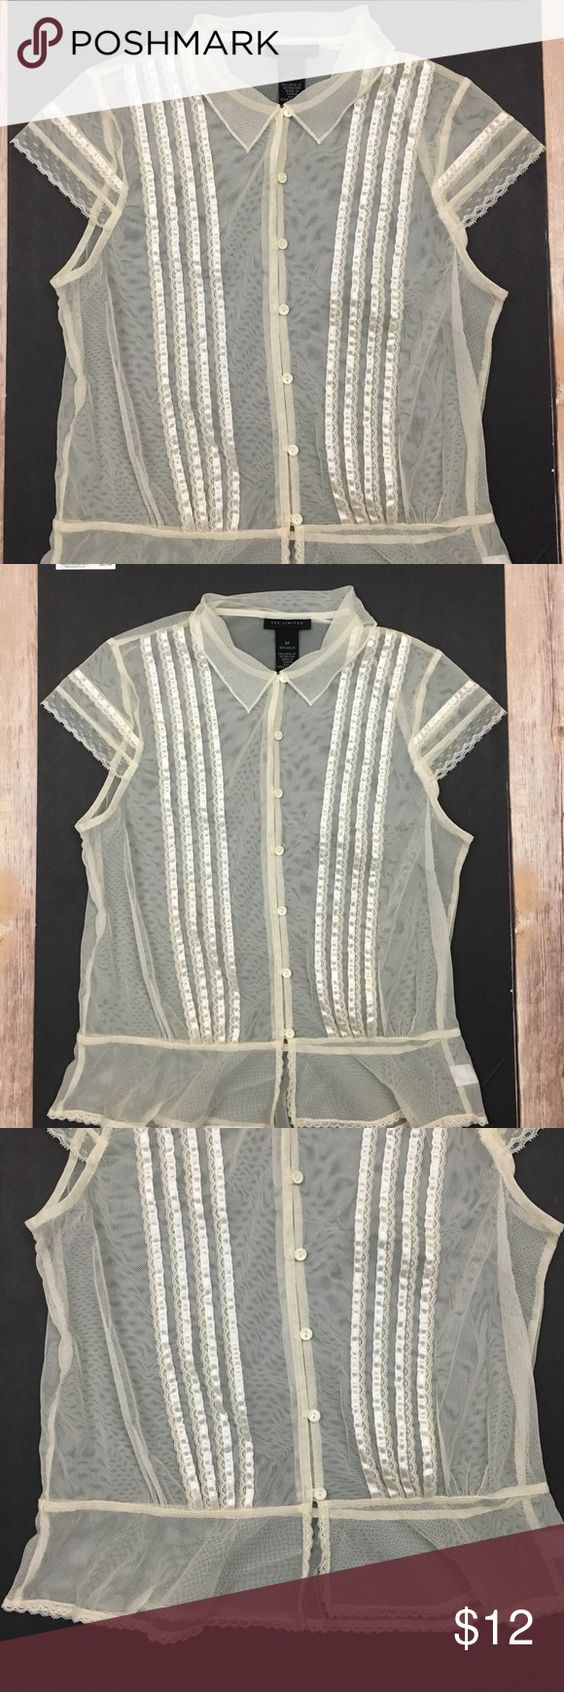 """The Limited Sheer Lace Top The Limited Sheer Lace Top. Button front,lace detail and cap style sleeves. Pit to pit  approx.19.5"""" Length approx. 22"""" The Limited Tops Blouses"""